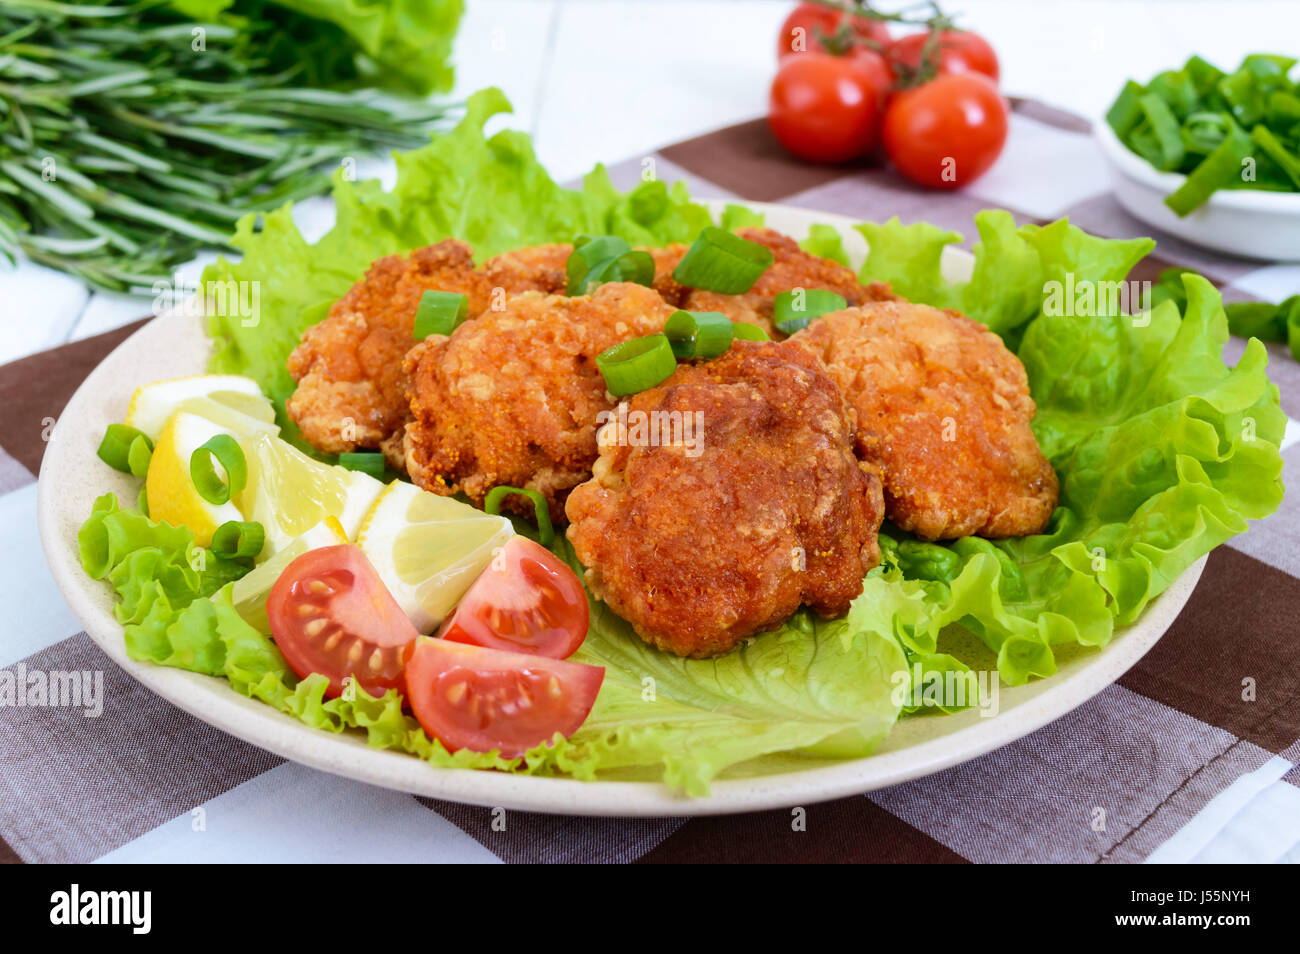 Fried caviar of river fish with lettuce leaves, cherry tomatoes on a light background. A dietary dish. Healthy eating. - Stock Image